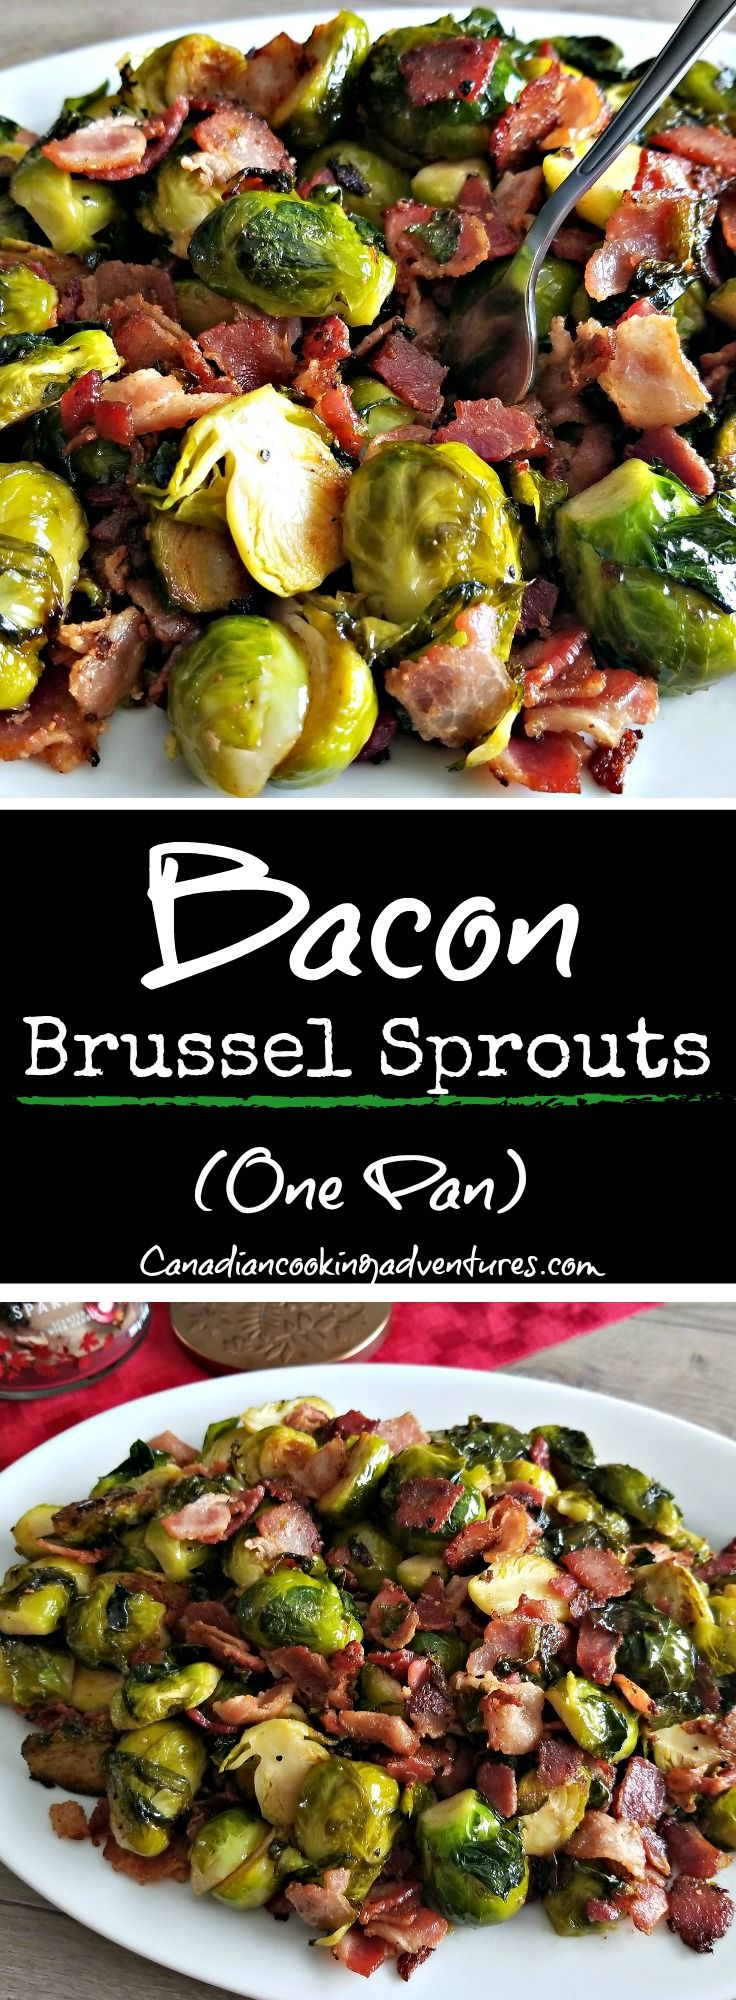 Bacon Brussel Sprouts  #bacon #brussels #brusselsprouts #sprouts #vegetables #sidedish #sides #christmas #thanksgiving #recipe #recipes #canadiancookingadventures #cooking #delcious #yummy #tasty #blogger #foodie #foodblogger #blog